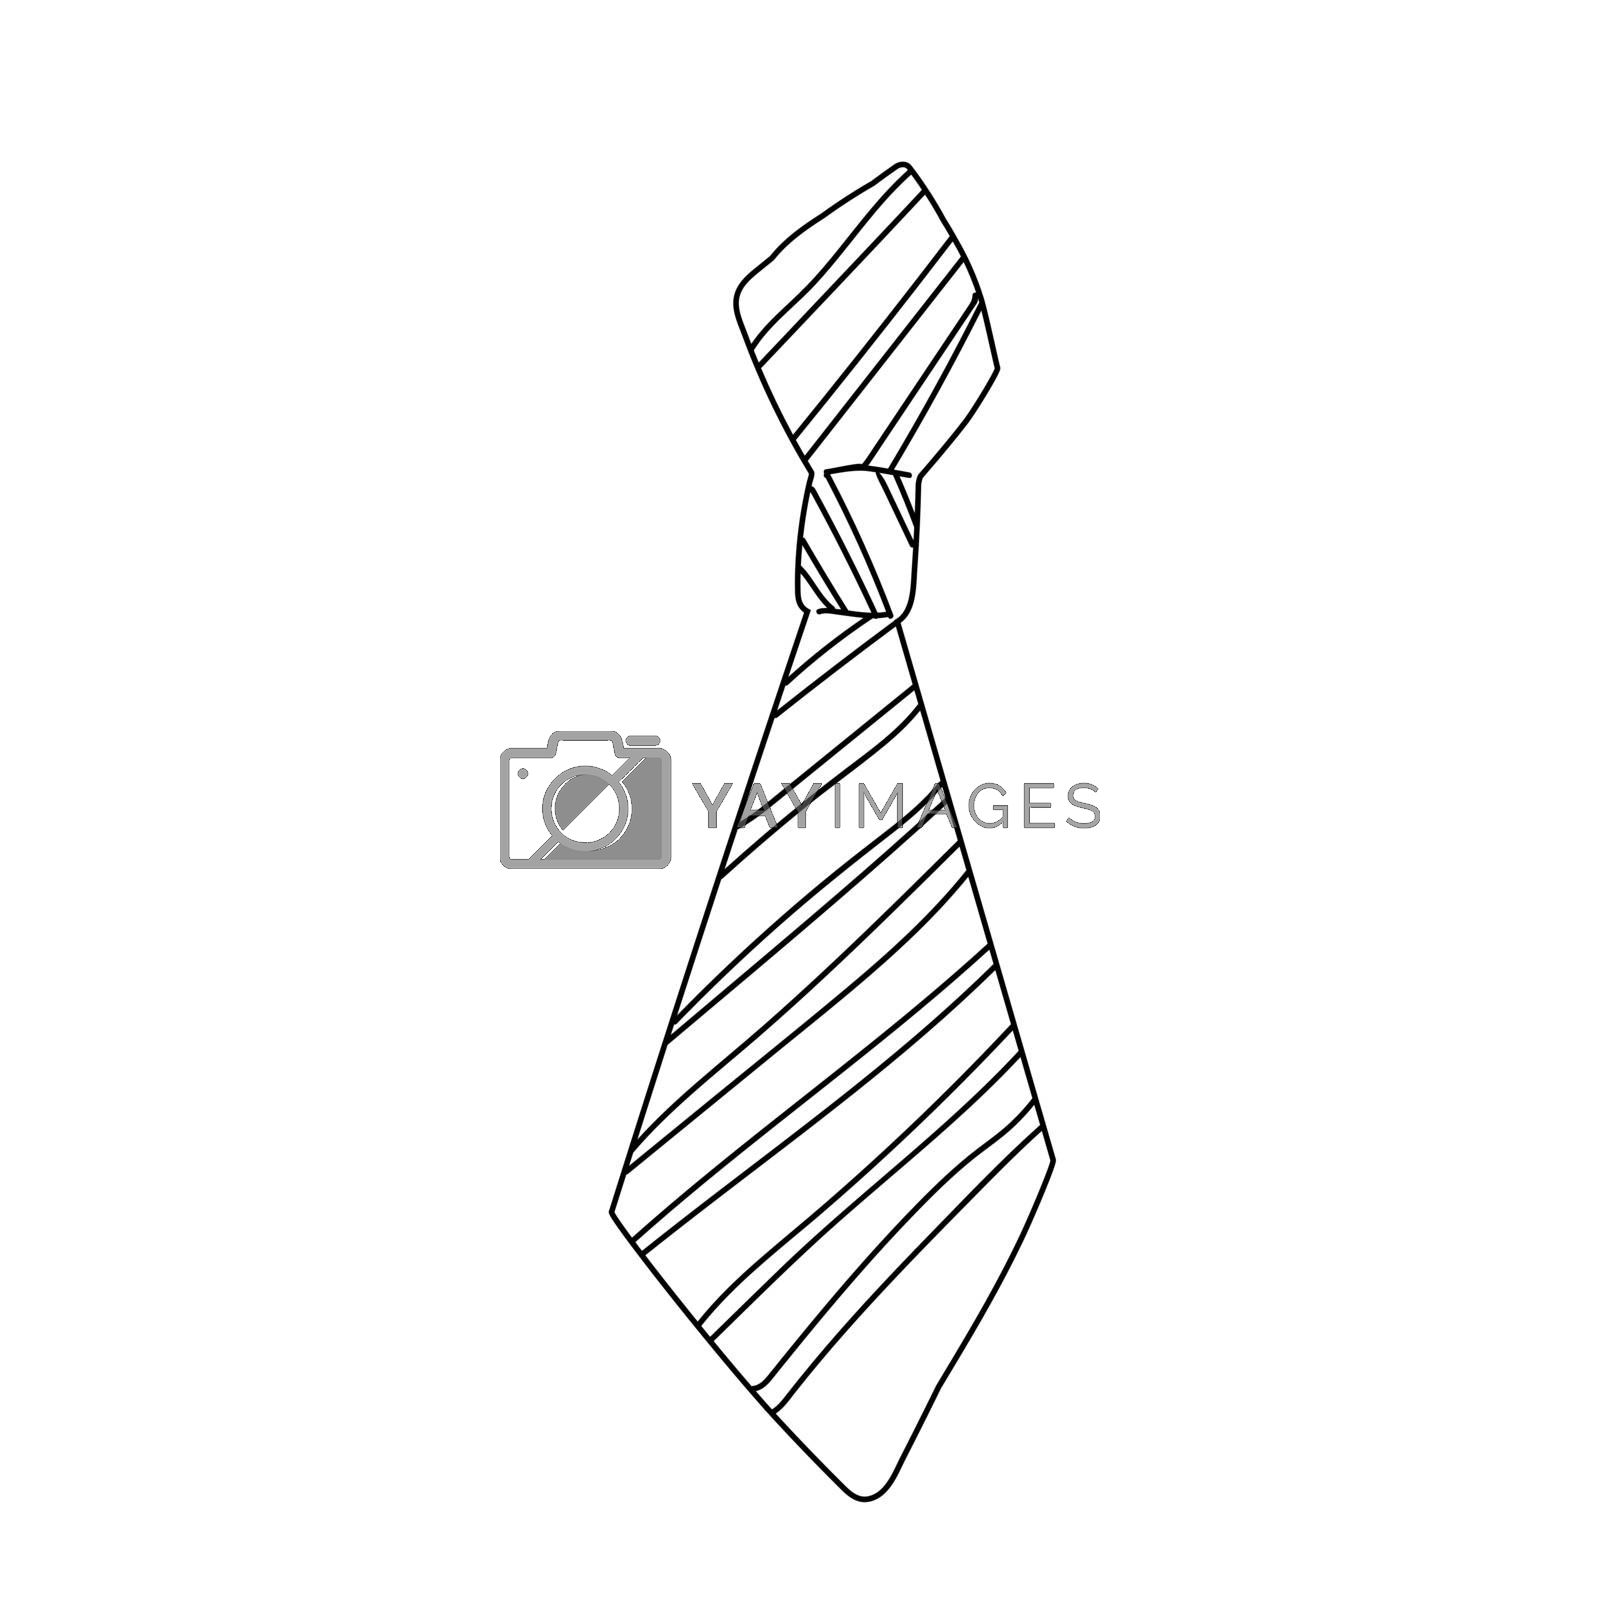 Windsor neckwear form design. Tie sign isolated on white background. Freehand outline ink hand drawn doodle icon sketchy in art scribble style pen on paper by zaryov